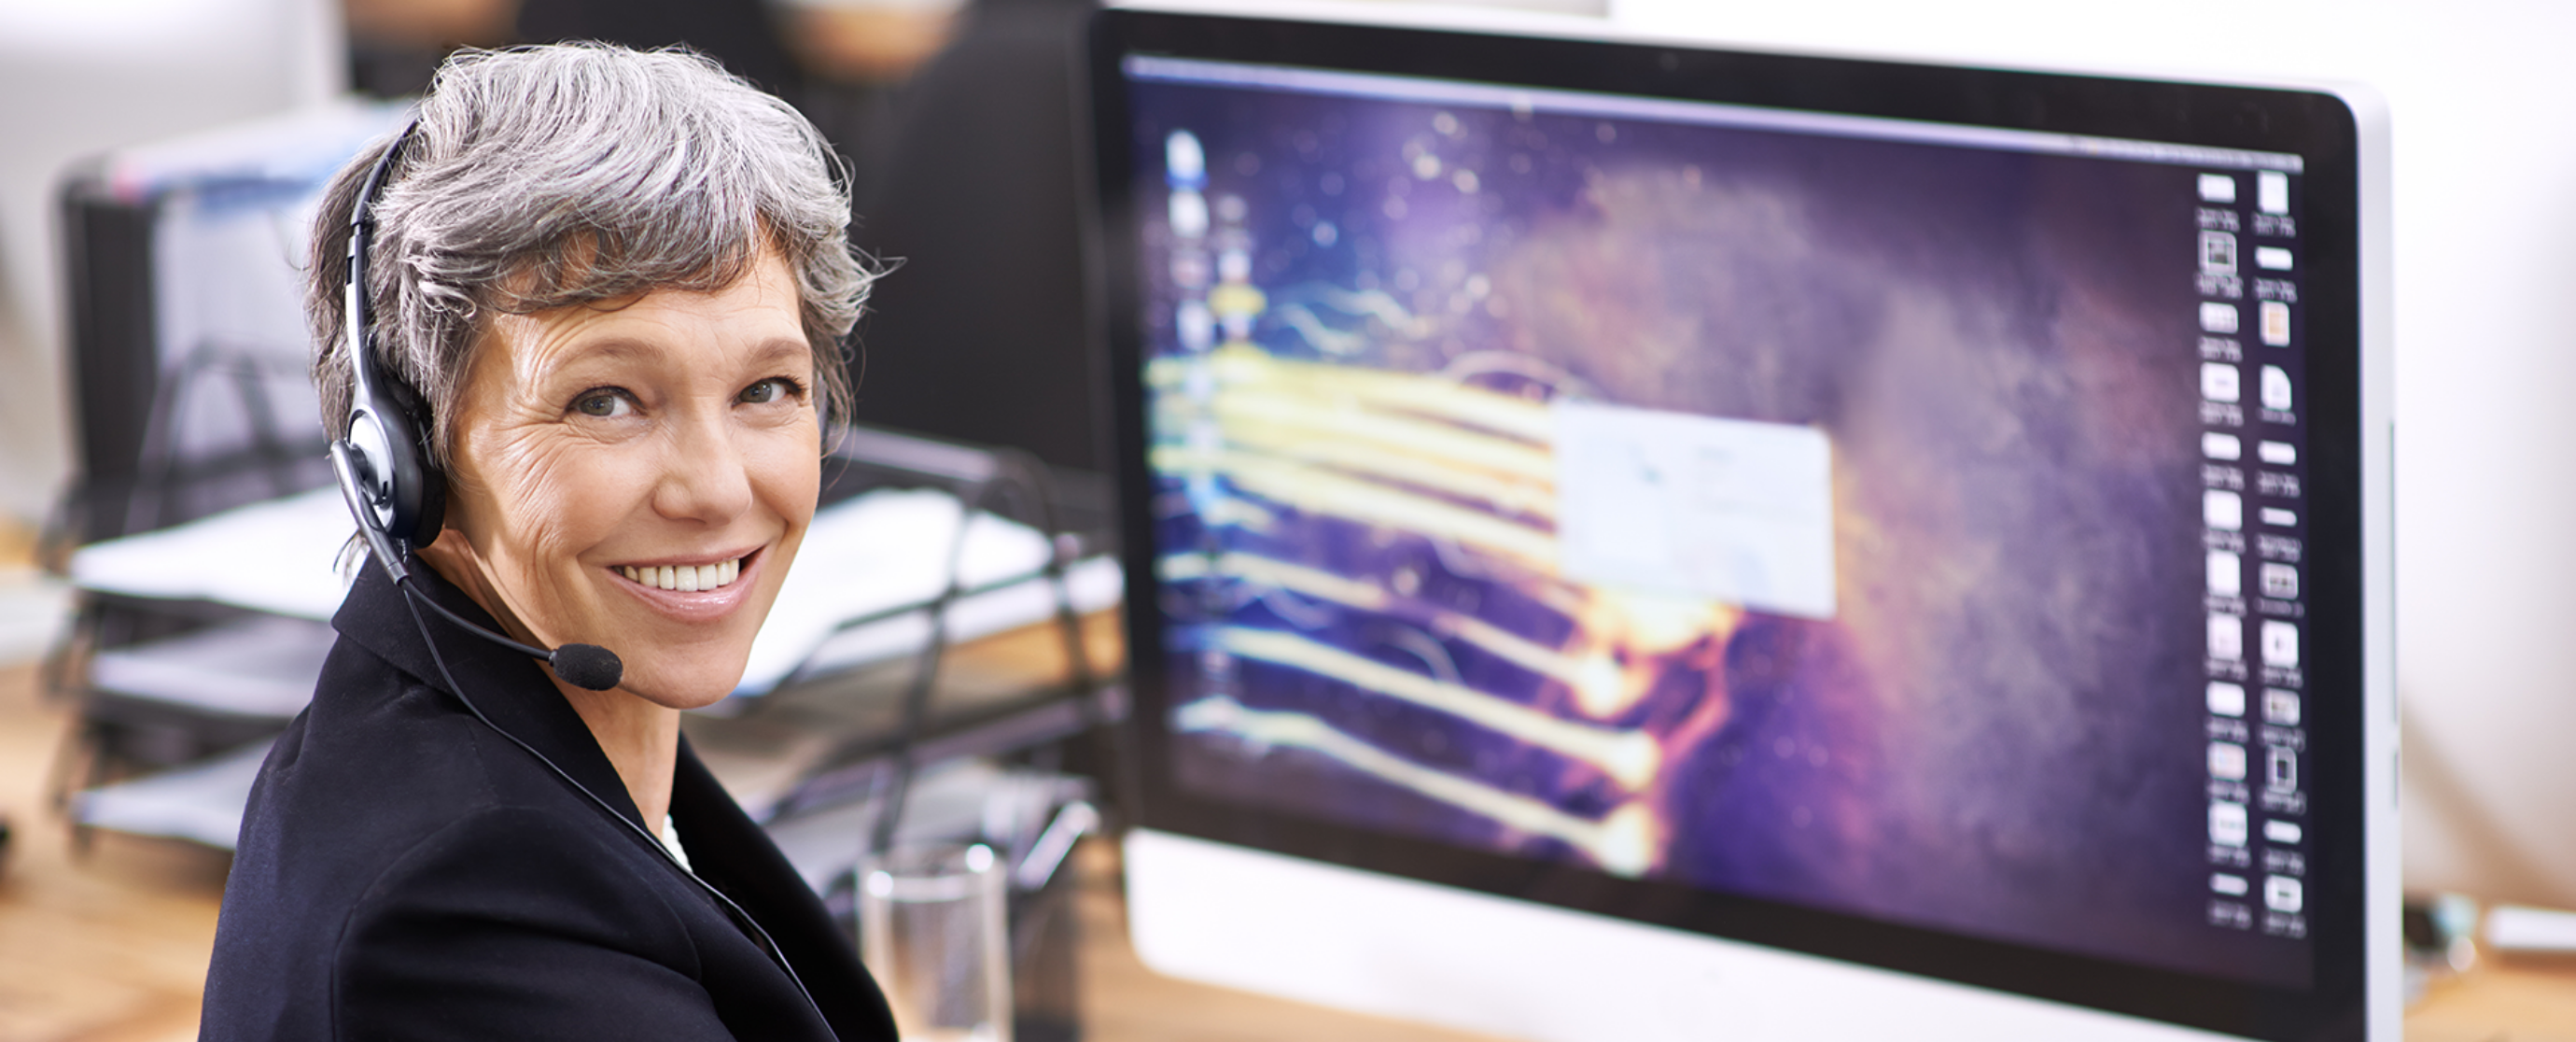 A woman wearing a headset in front of a large computer screen turns and smiles